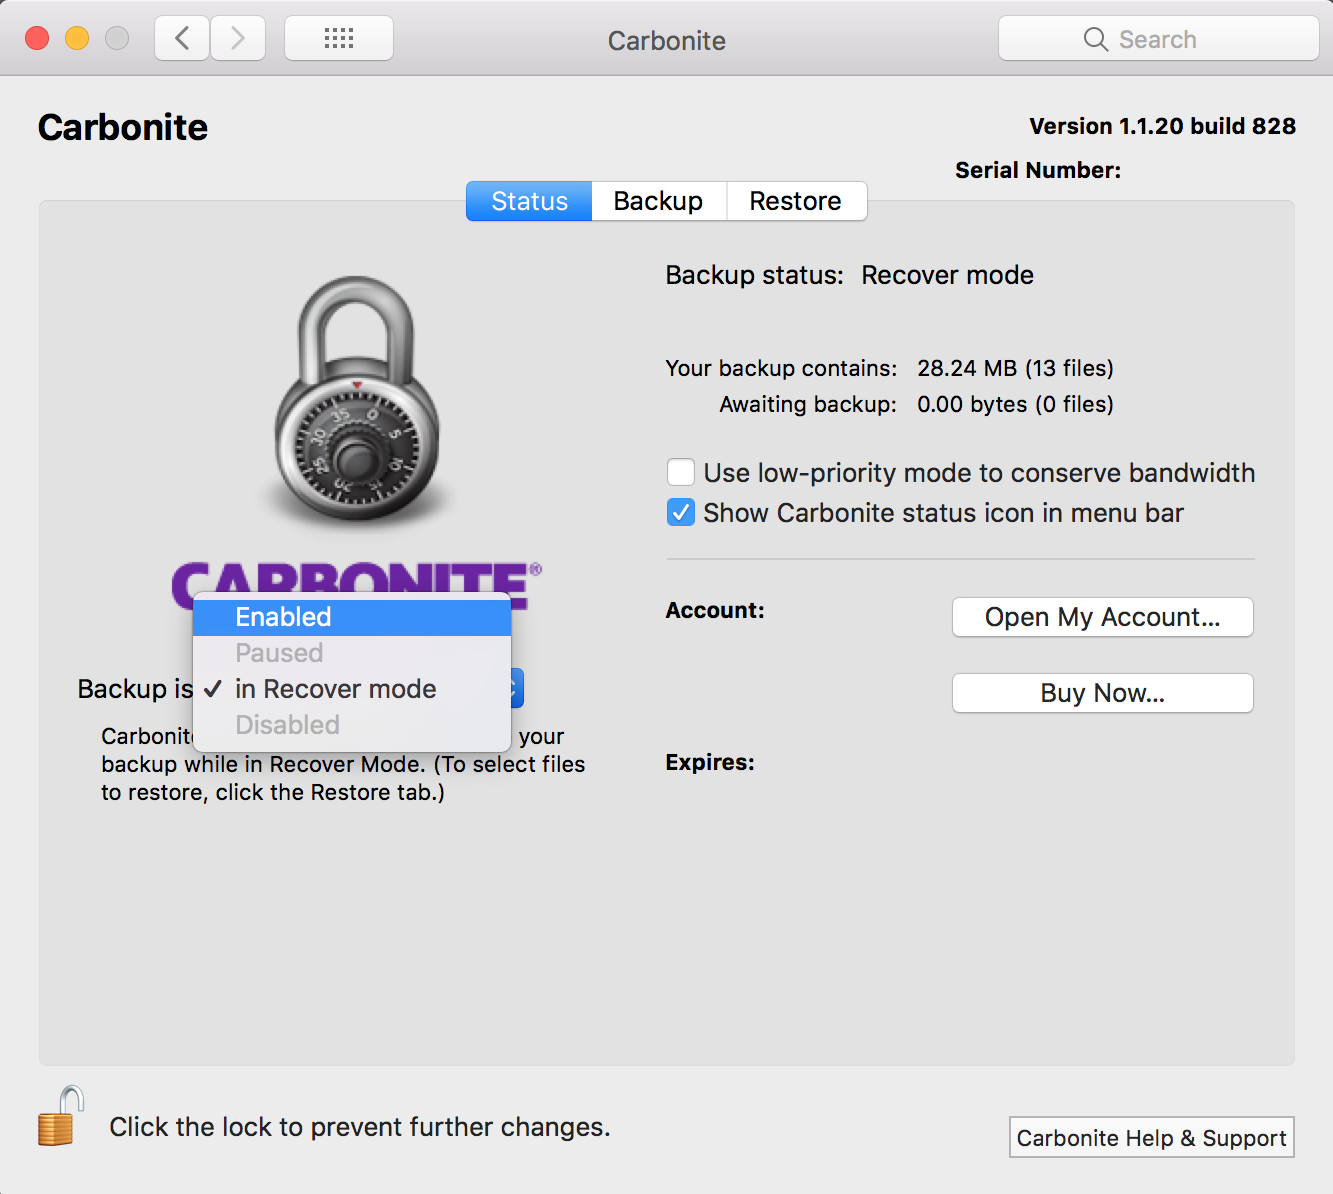 Carbonite 1.x Client: Set Backup is drop-down menu to Enabled